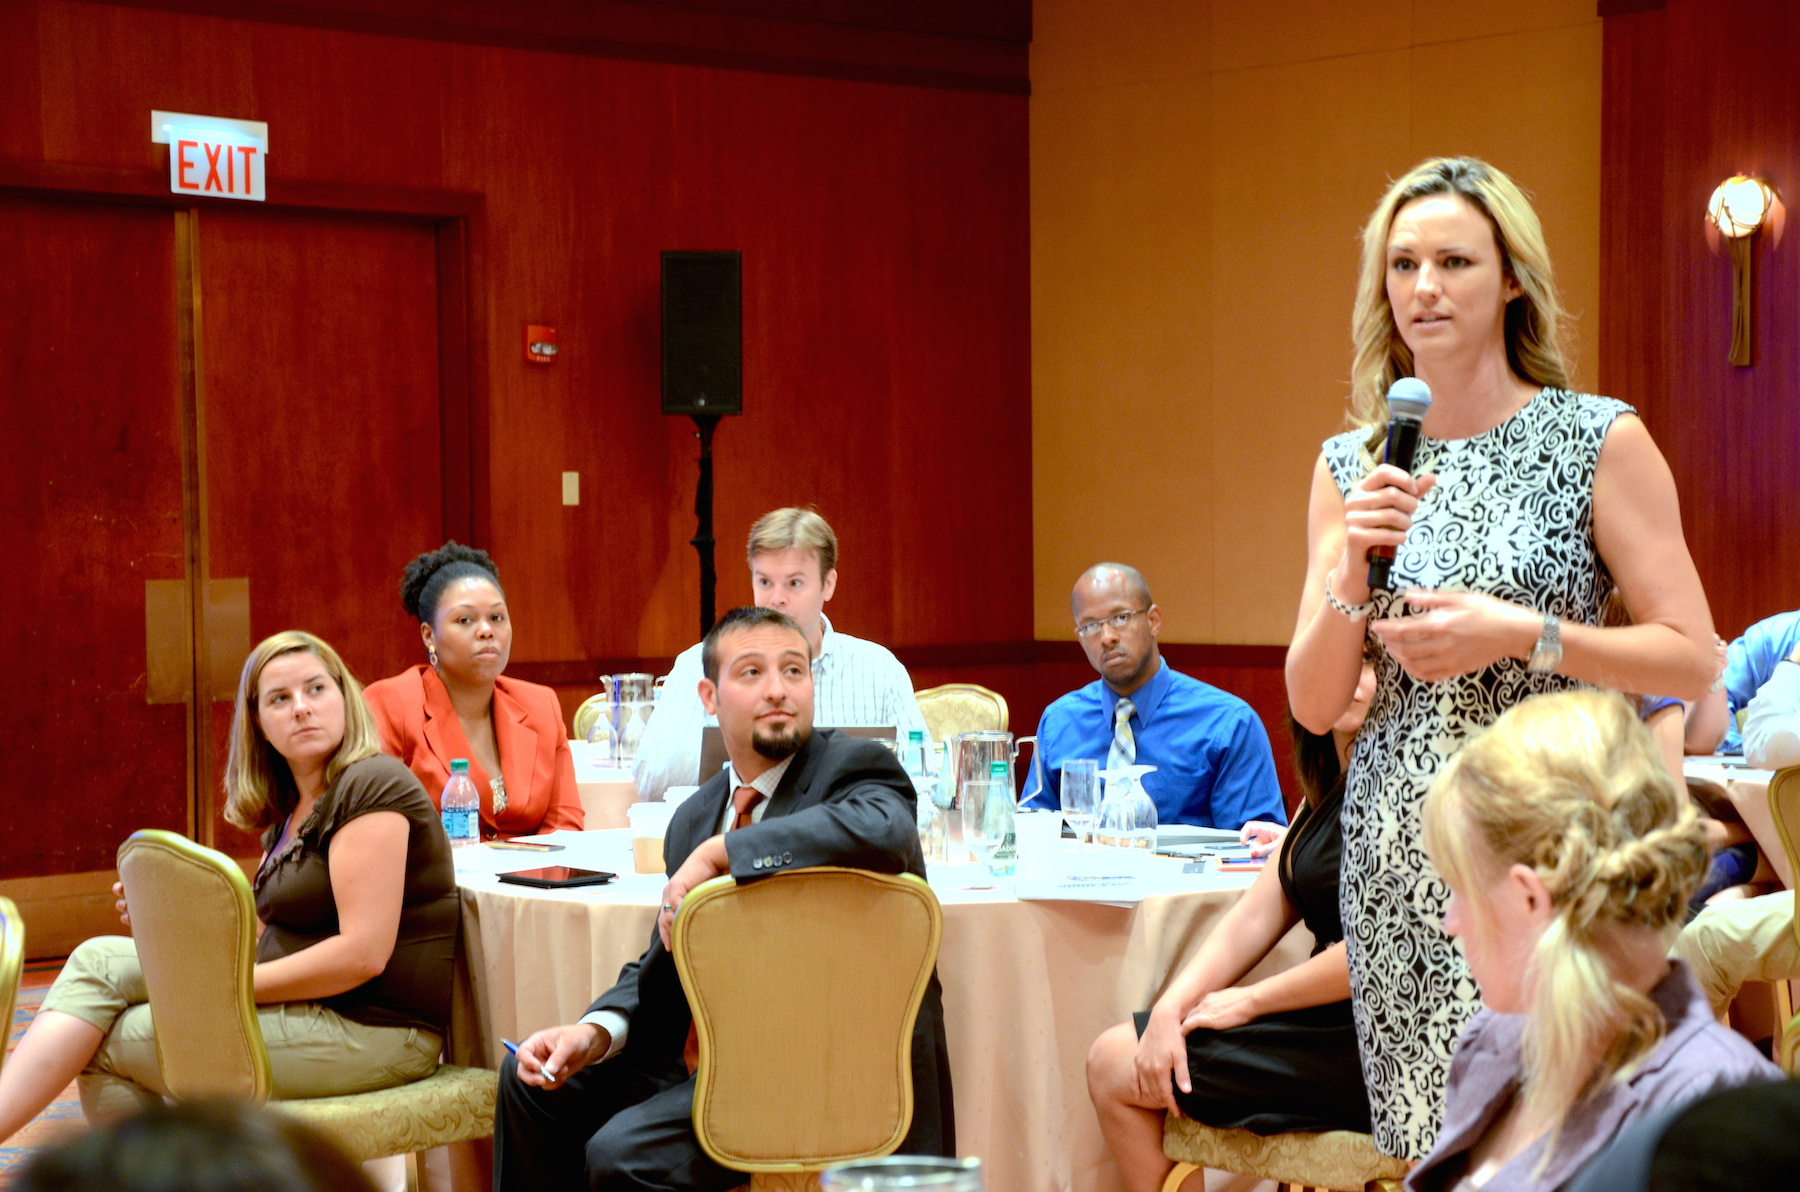 Erin Steele, 2014 Bay East YPN Vice Chair, explains her perspective as an affiliate member of YPN. (Photo by Meg White)